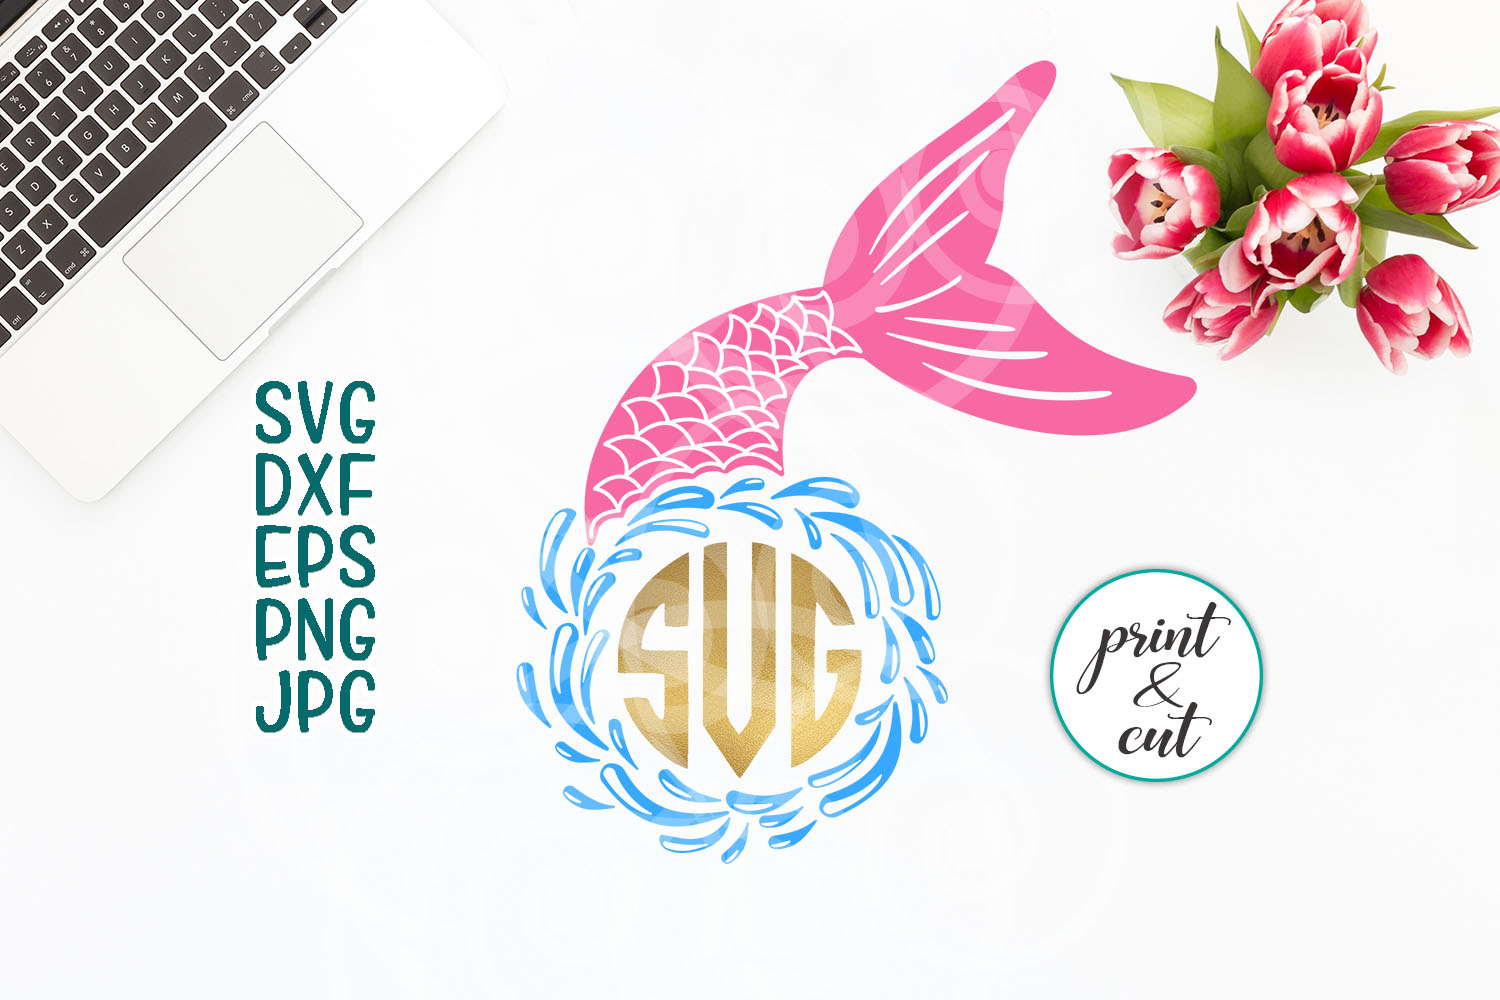 Free Split Monogram Svg Files For Cricut Free Svg Cut Files Create Your Diy Projects Using Your Cricut Explore Silhouette And More The Free Cut Files Include Svg Dxf Eps And